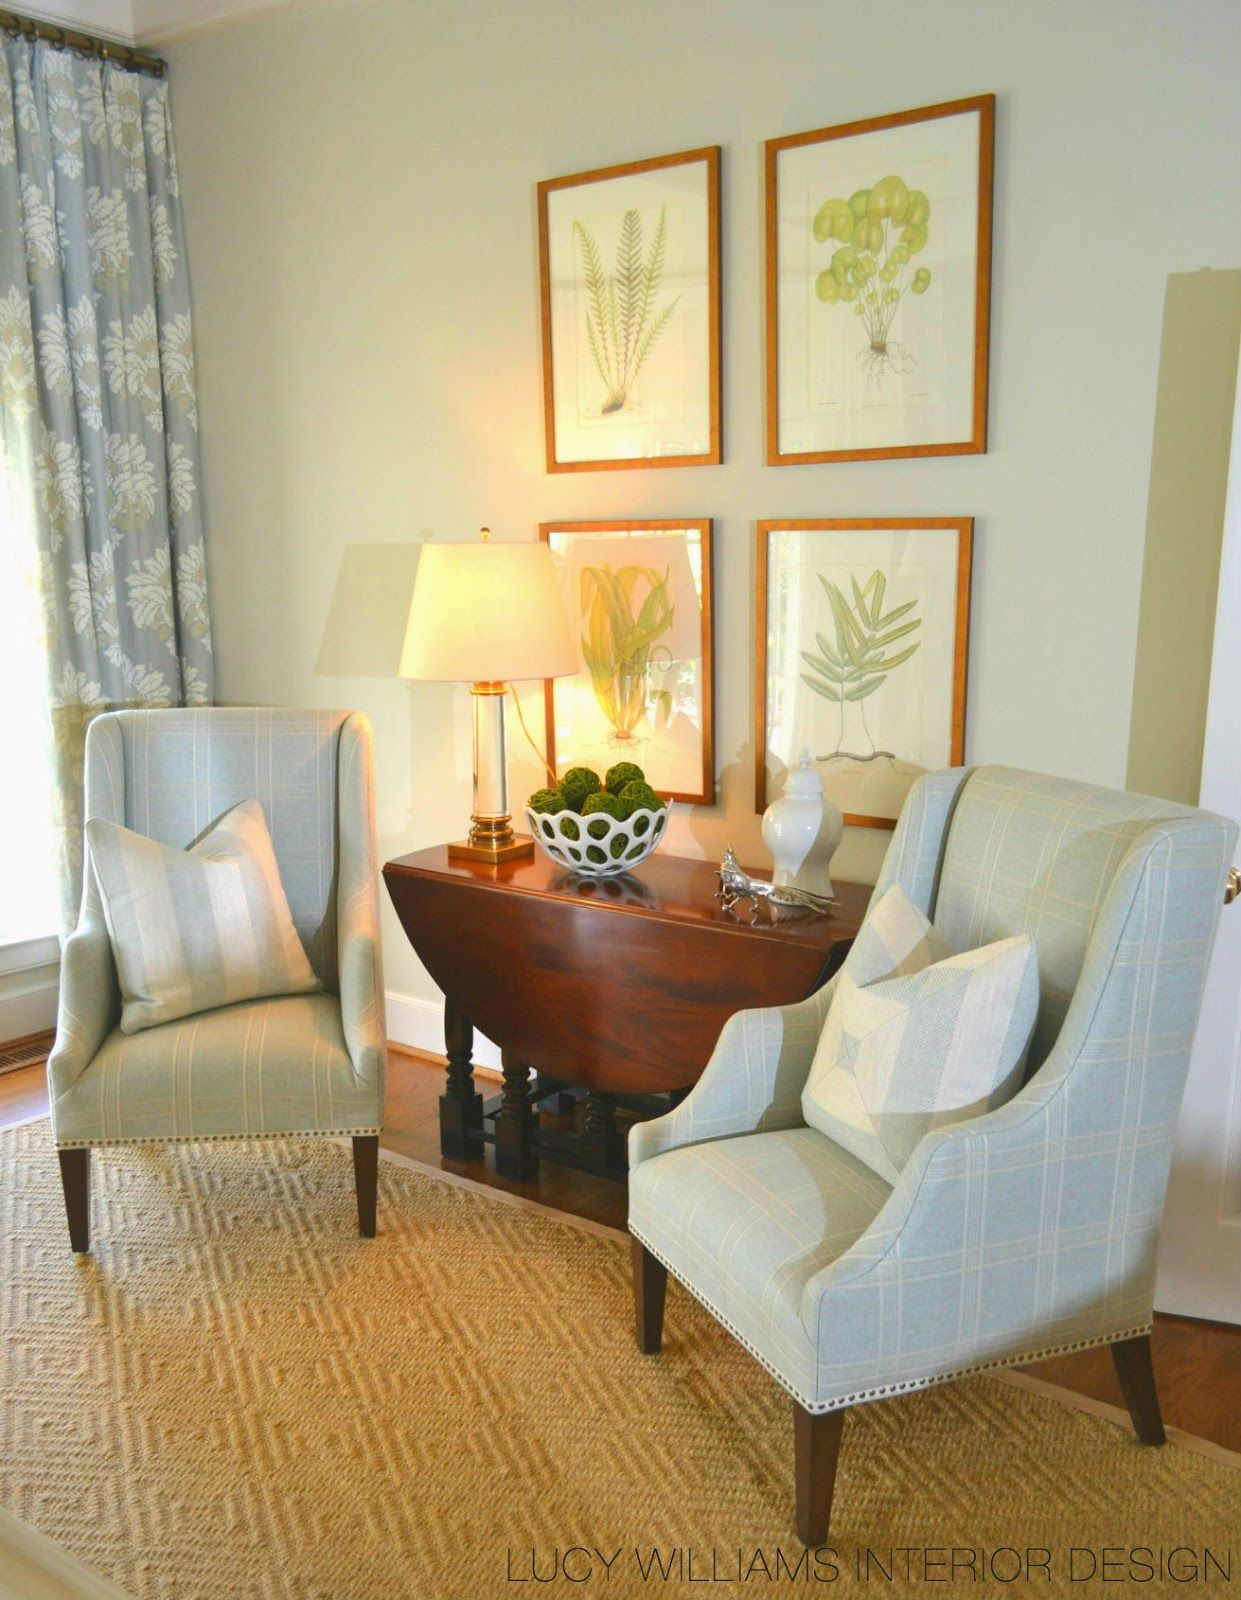 LUCY WILLIAMS INTERIOR DESIGN BLOG: BEFORE AND AFTER: PINEWOOD ...